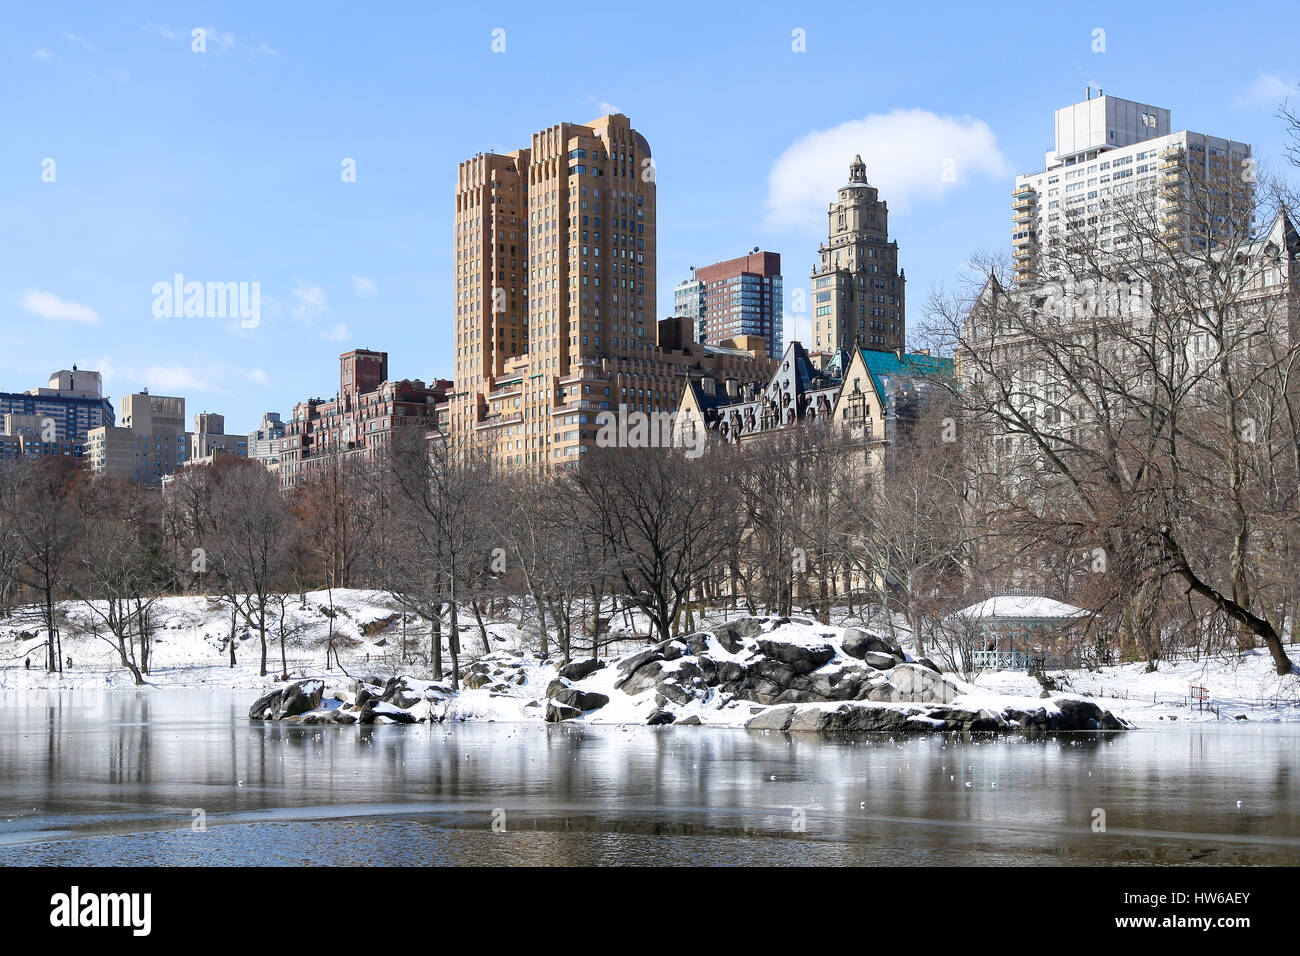 Winter in Central Park, New York, NY - Stock Image